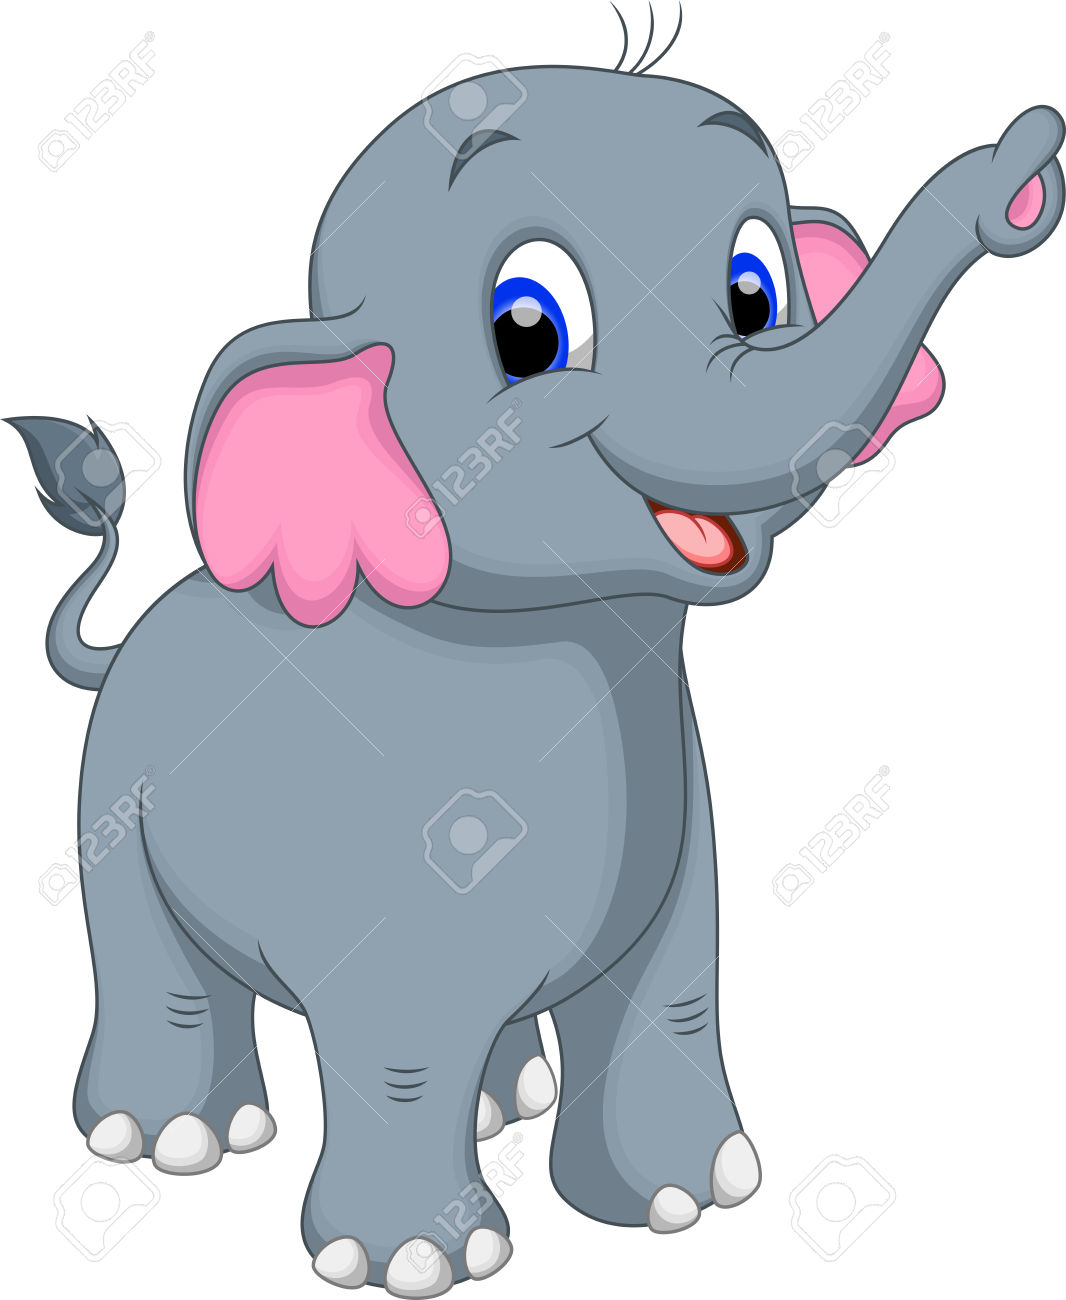 1066x1300 Asian Elephant Clipart Animated